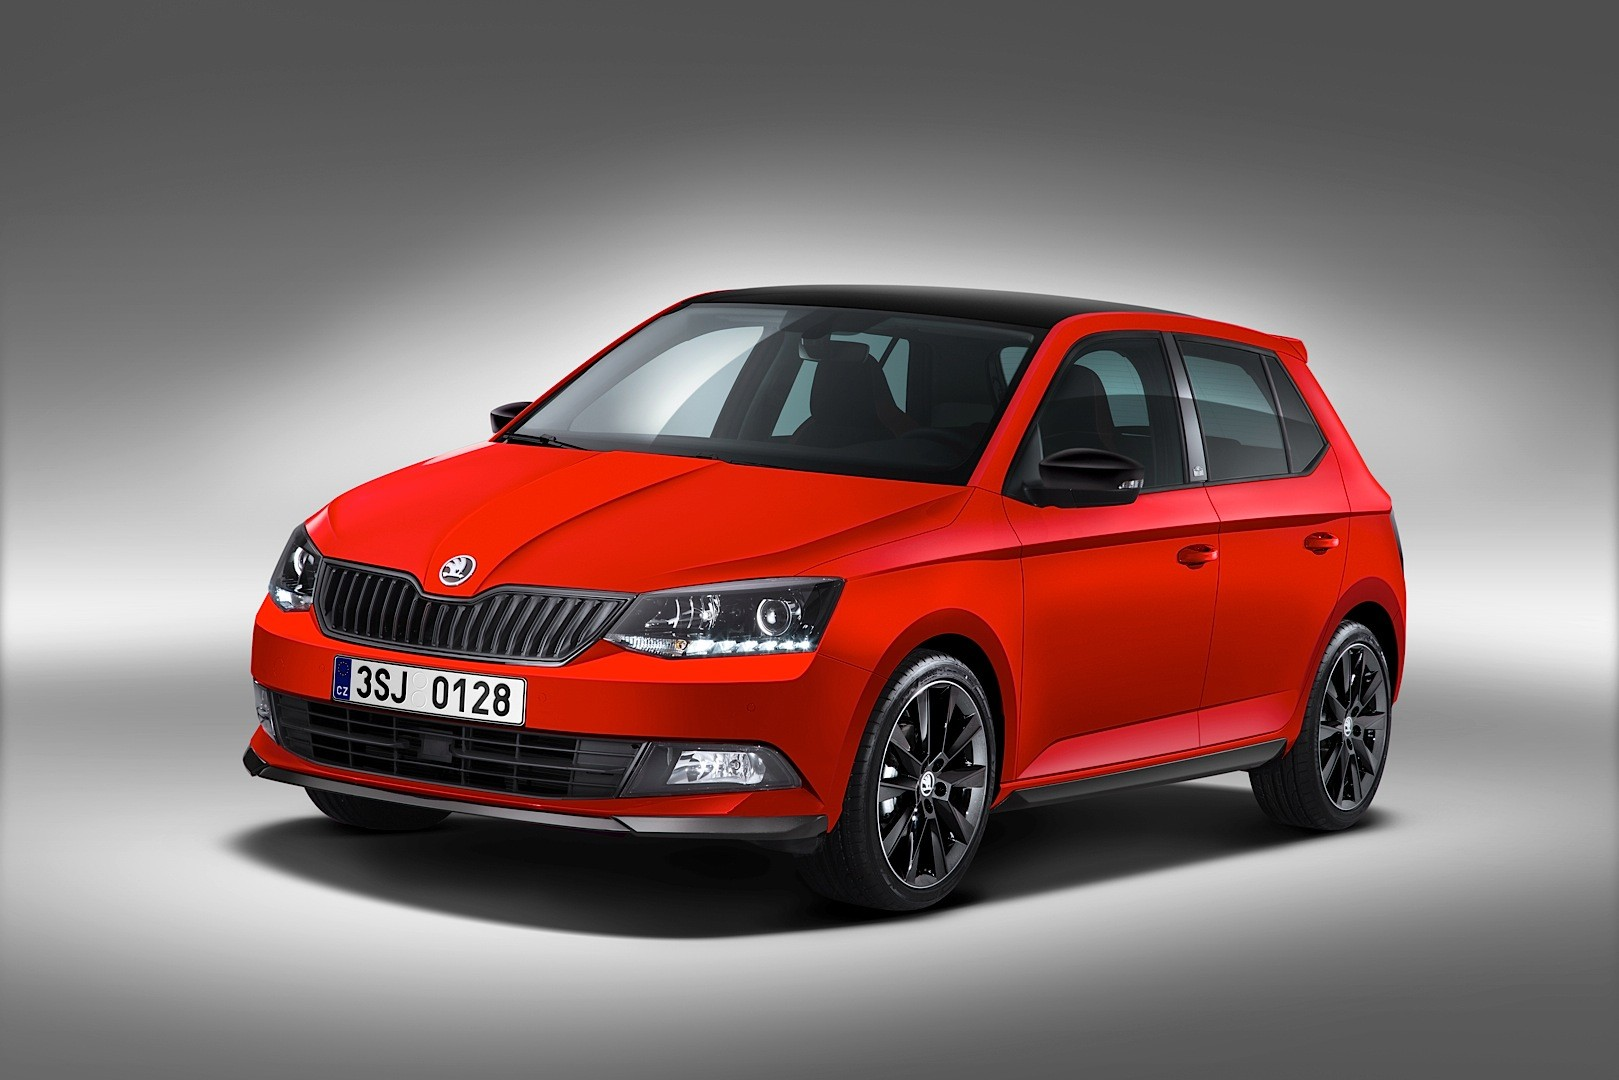 2015 skoda fabia monte carlo revealed ahead of geneva autoevolution. Black Bedroom Furniture Sets. Home Design Ideas